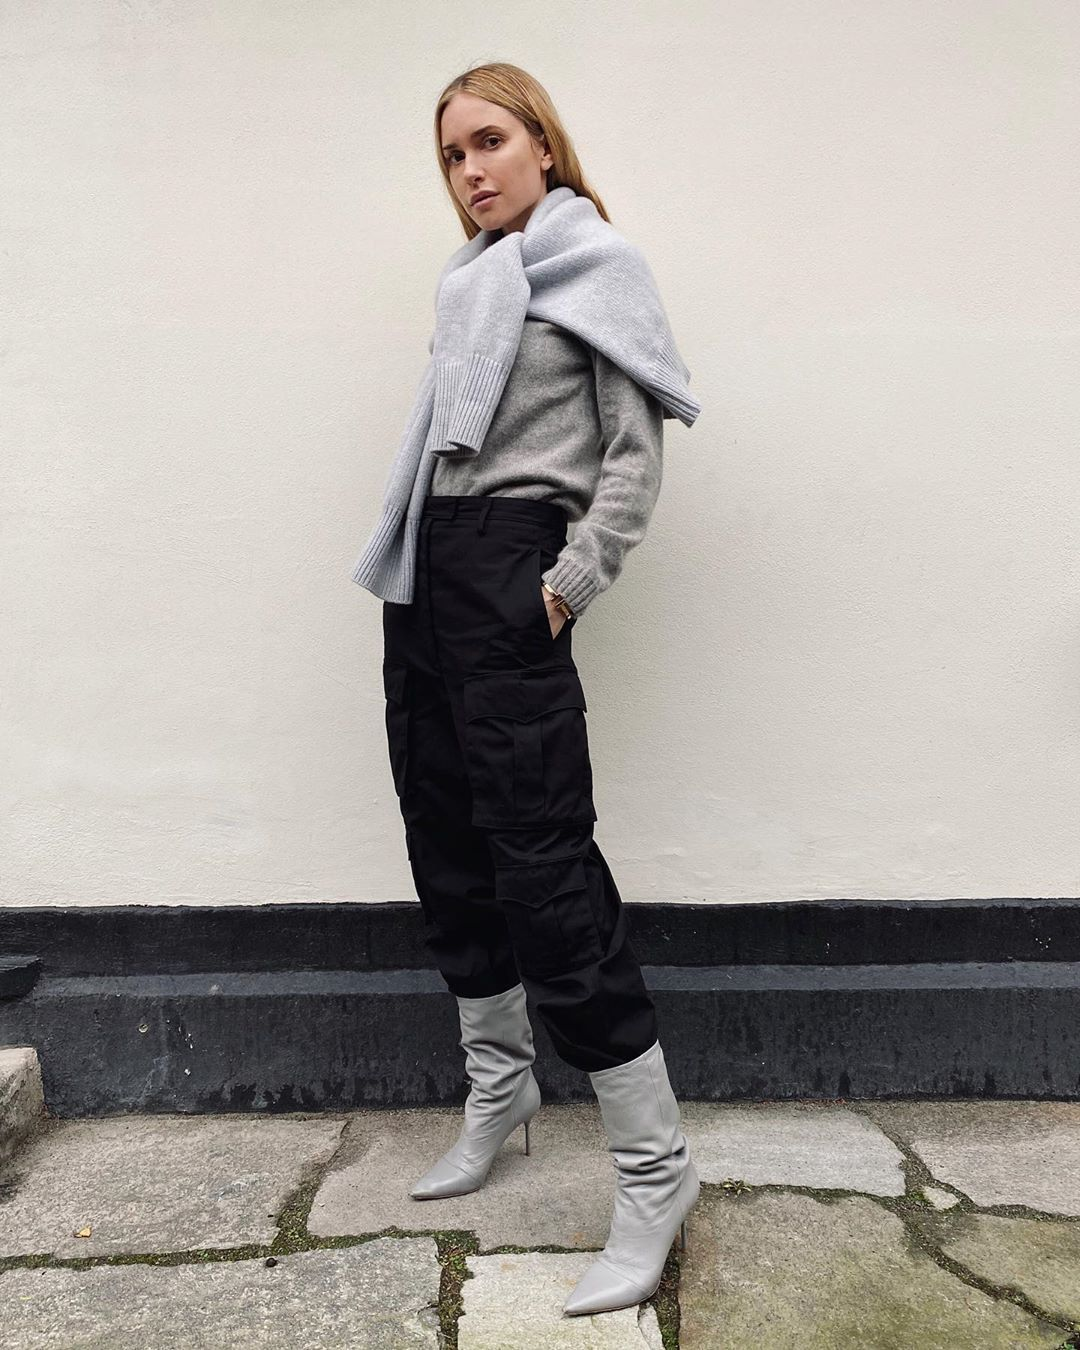 pernille-teisbaek-winter-wrapped-outfit-instagram